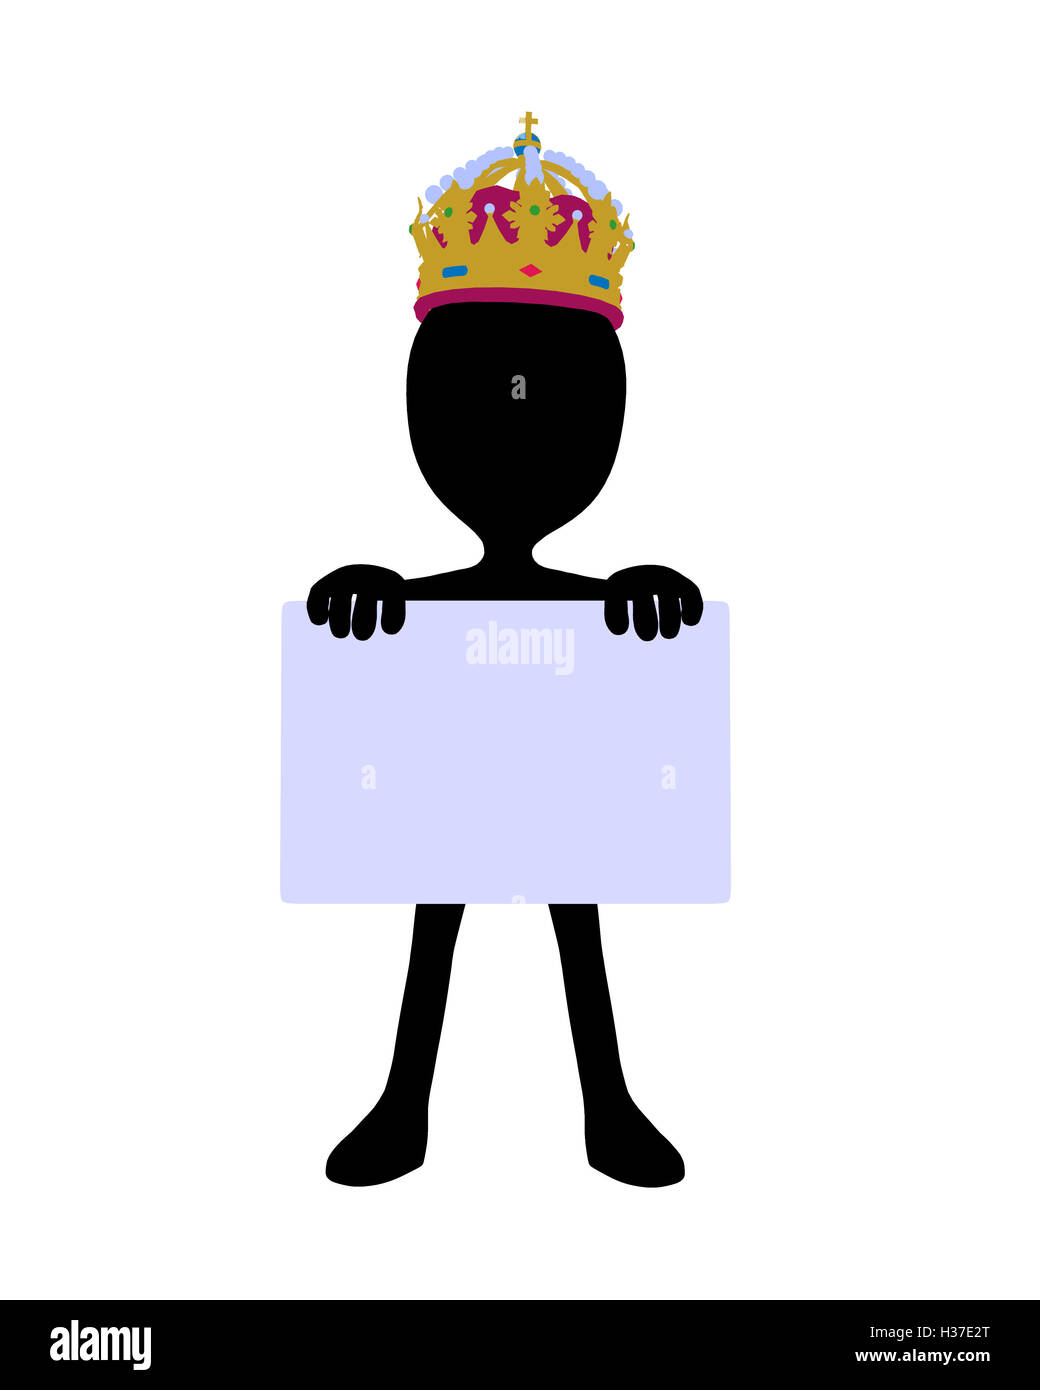 Cute Black Silhouette King Guy Holding a Blank Business Card Stock ...